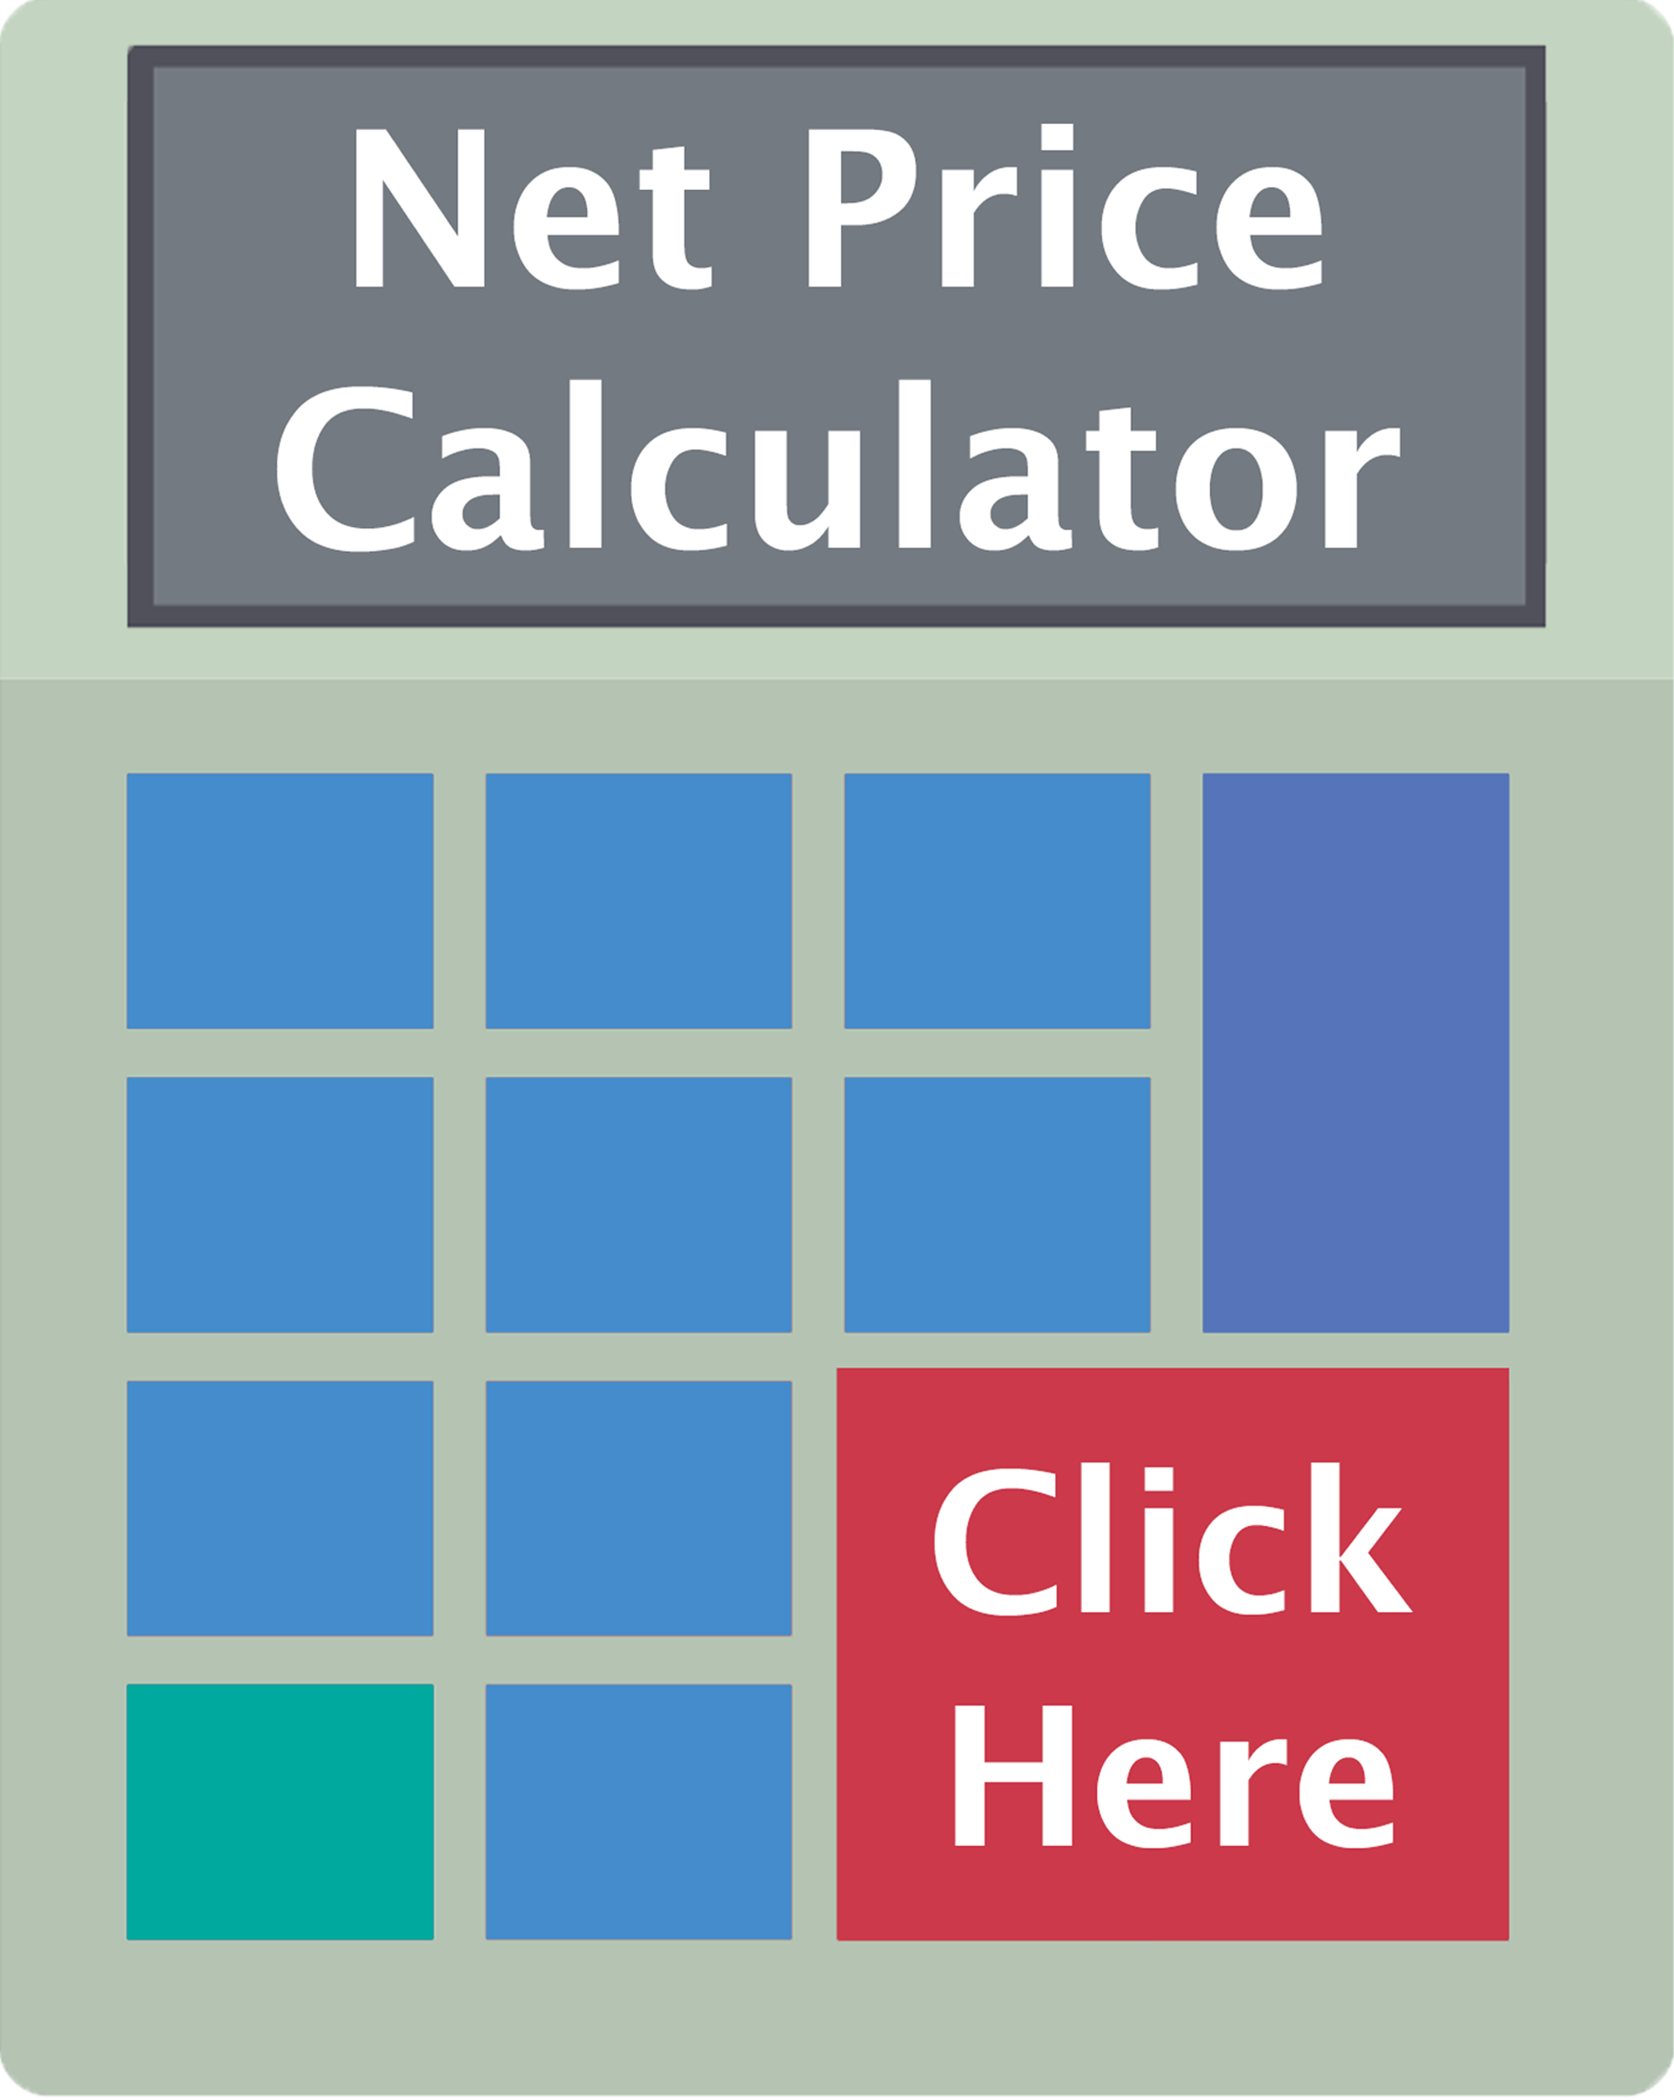 NET PRICE CALCULATOR BUTTON